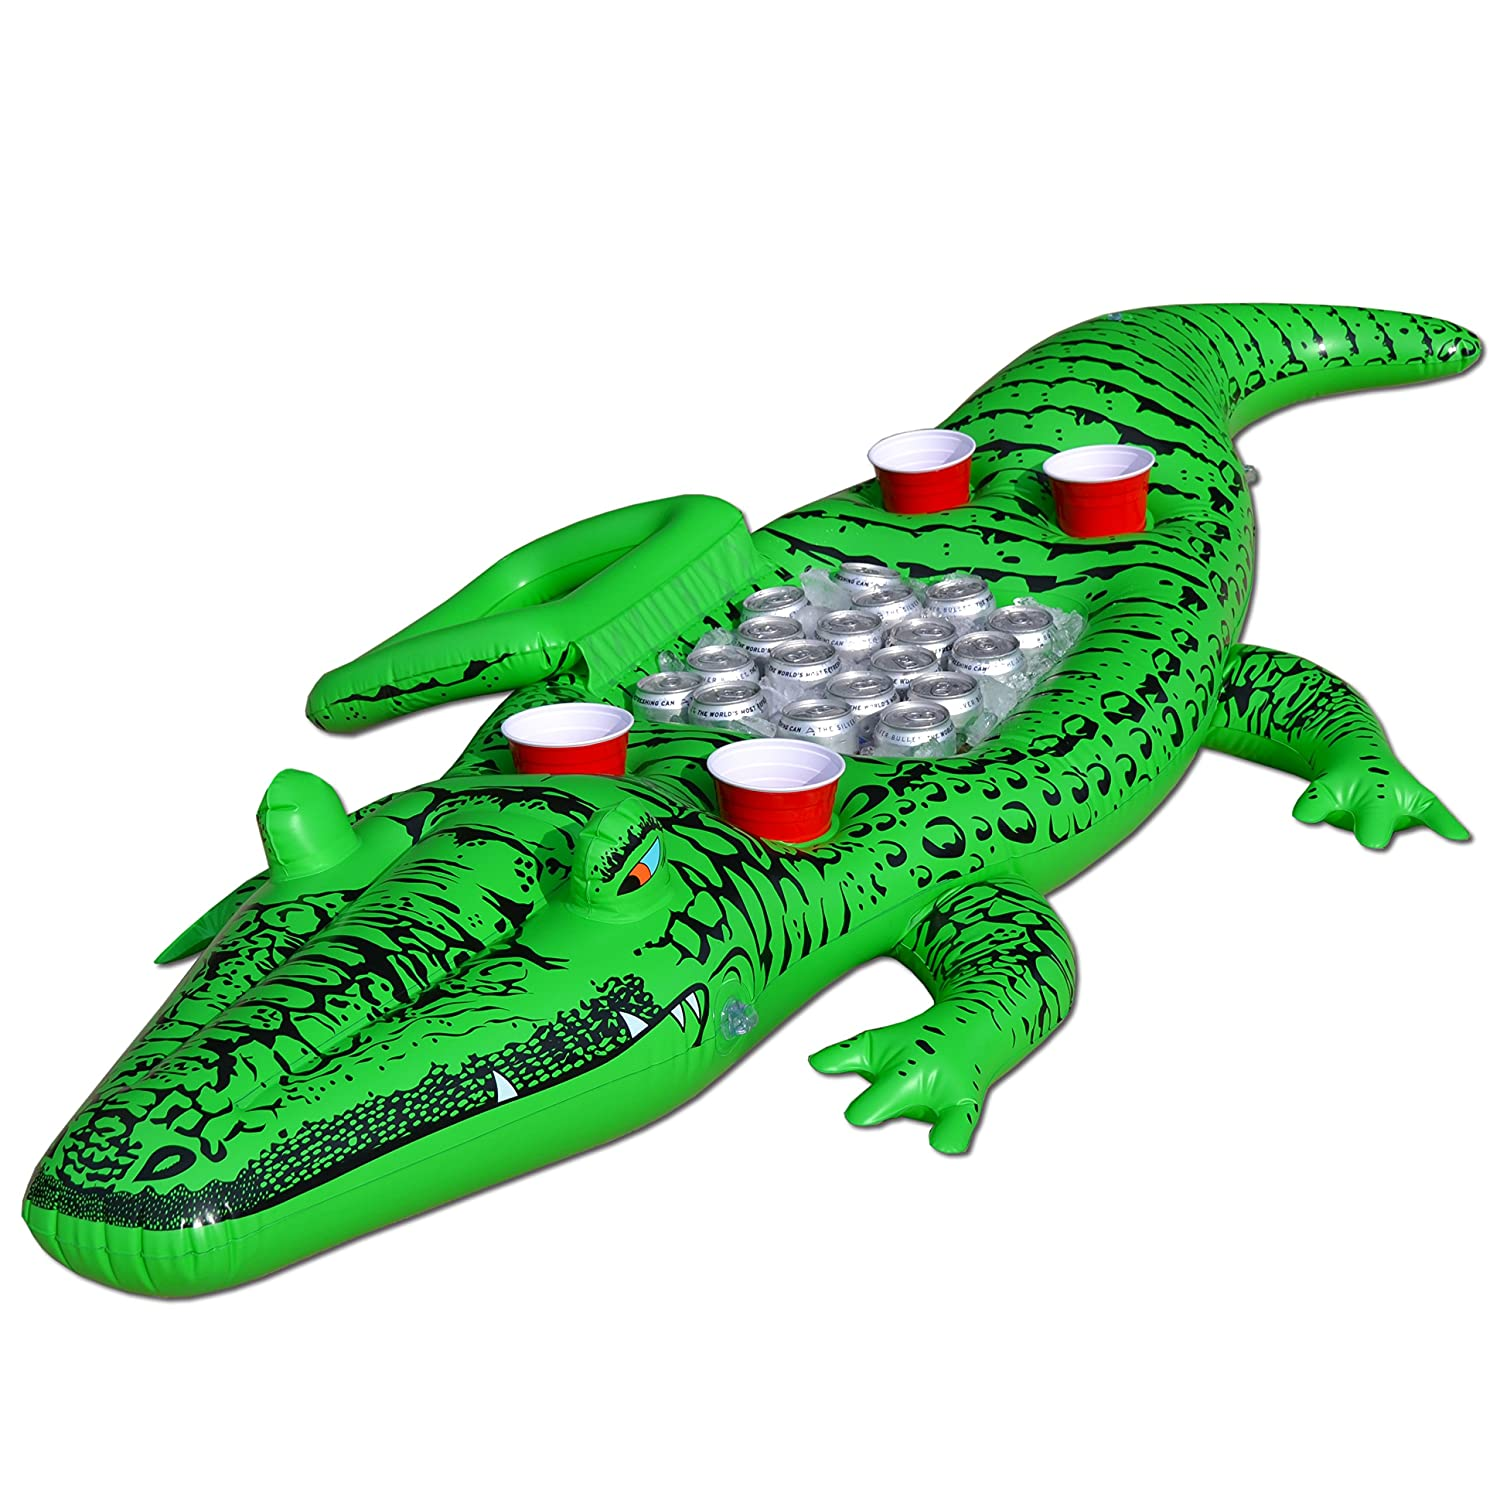 Amazon.com : GoFloats Giant Party Gator Floating Alligator With Cooler And  Cup Holders, Over 6u0027 Long : Sports U0026 Outdoors